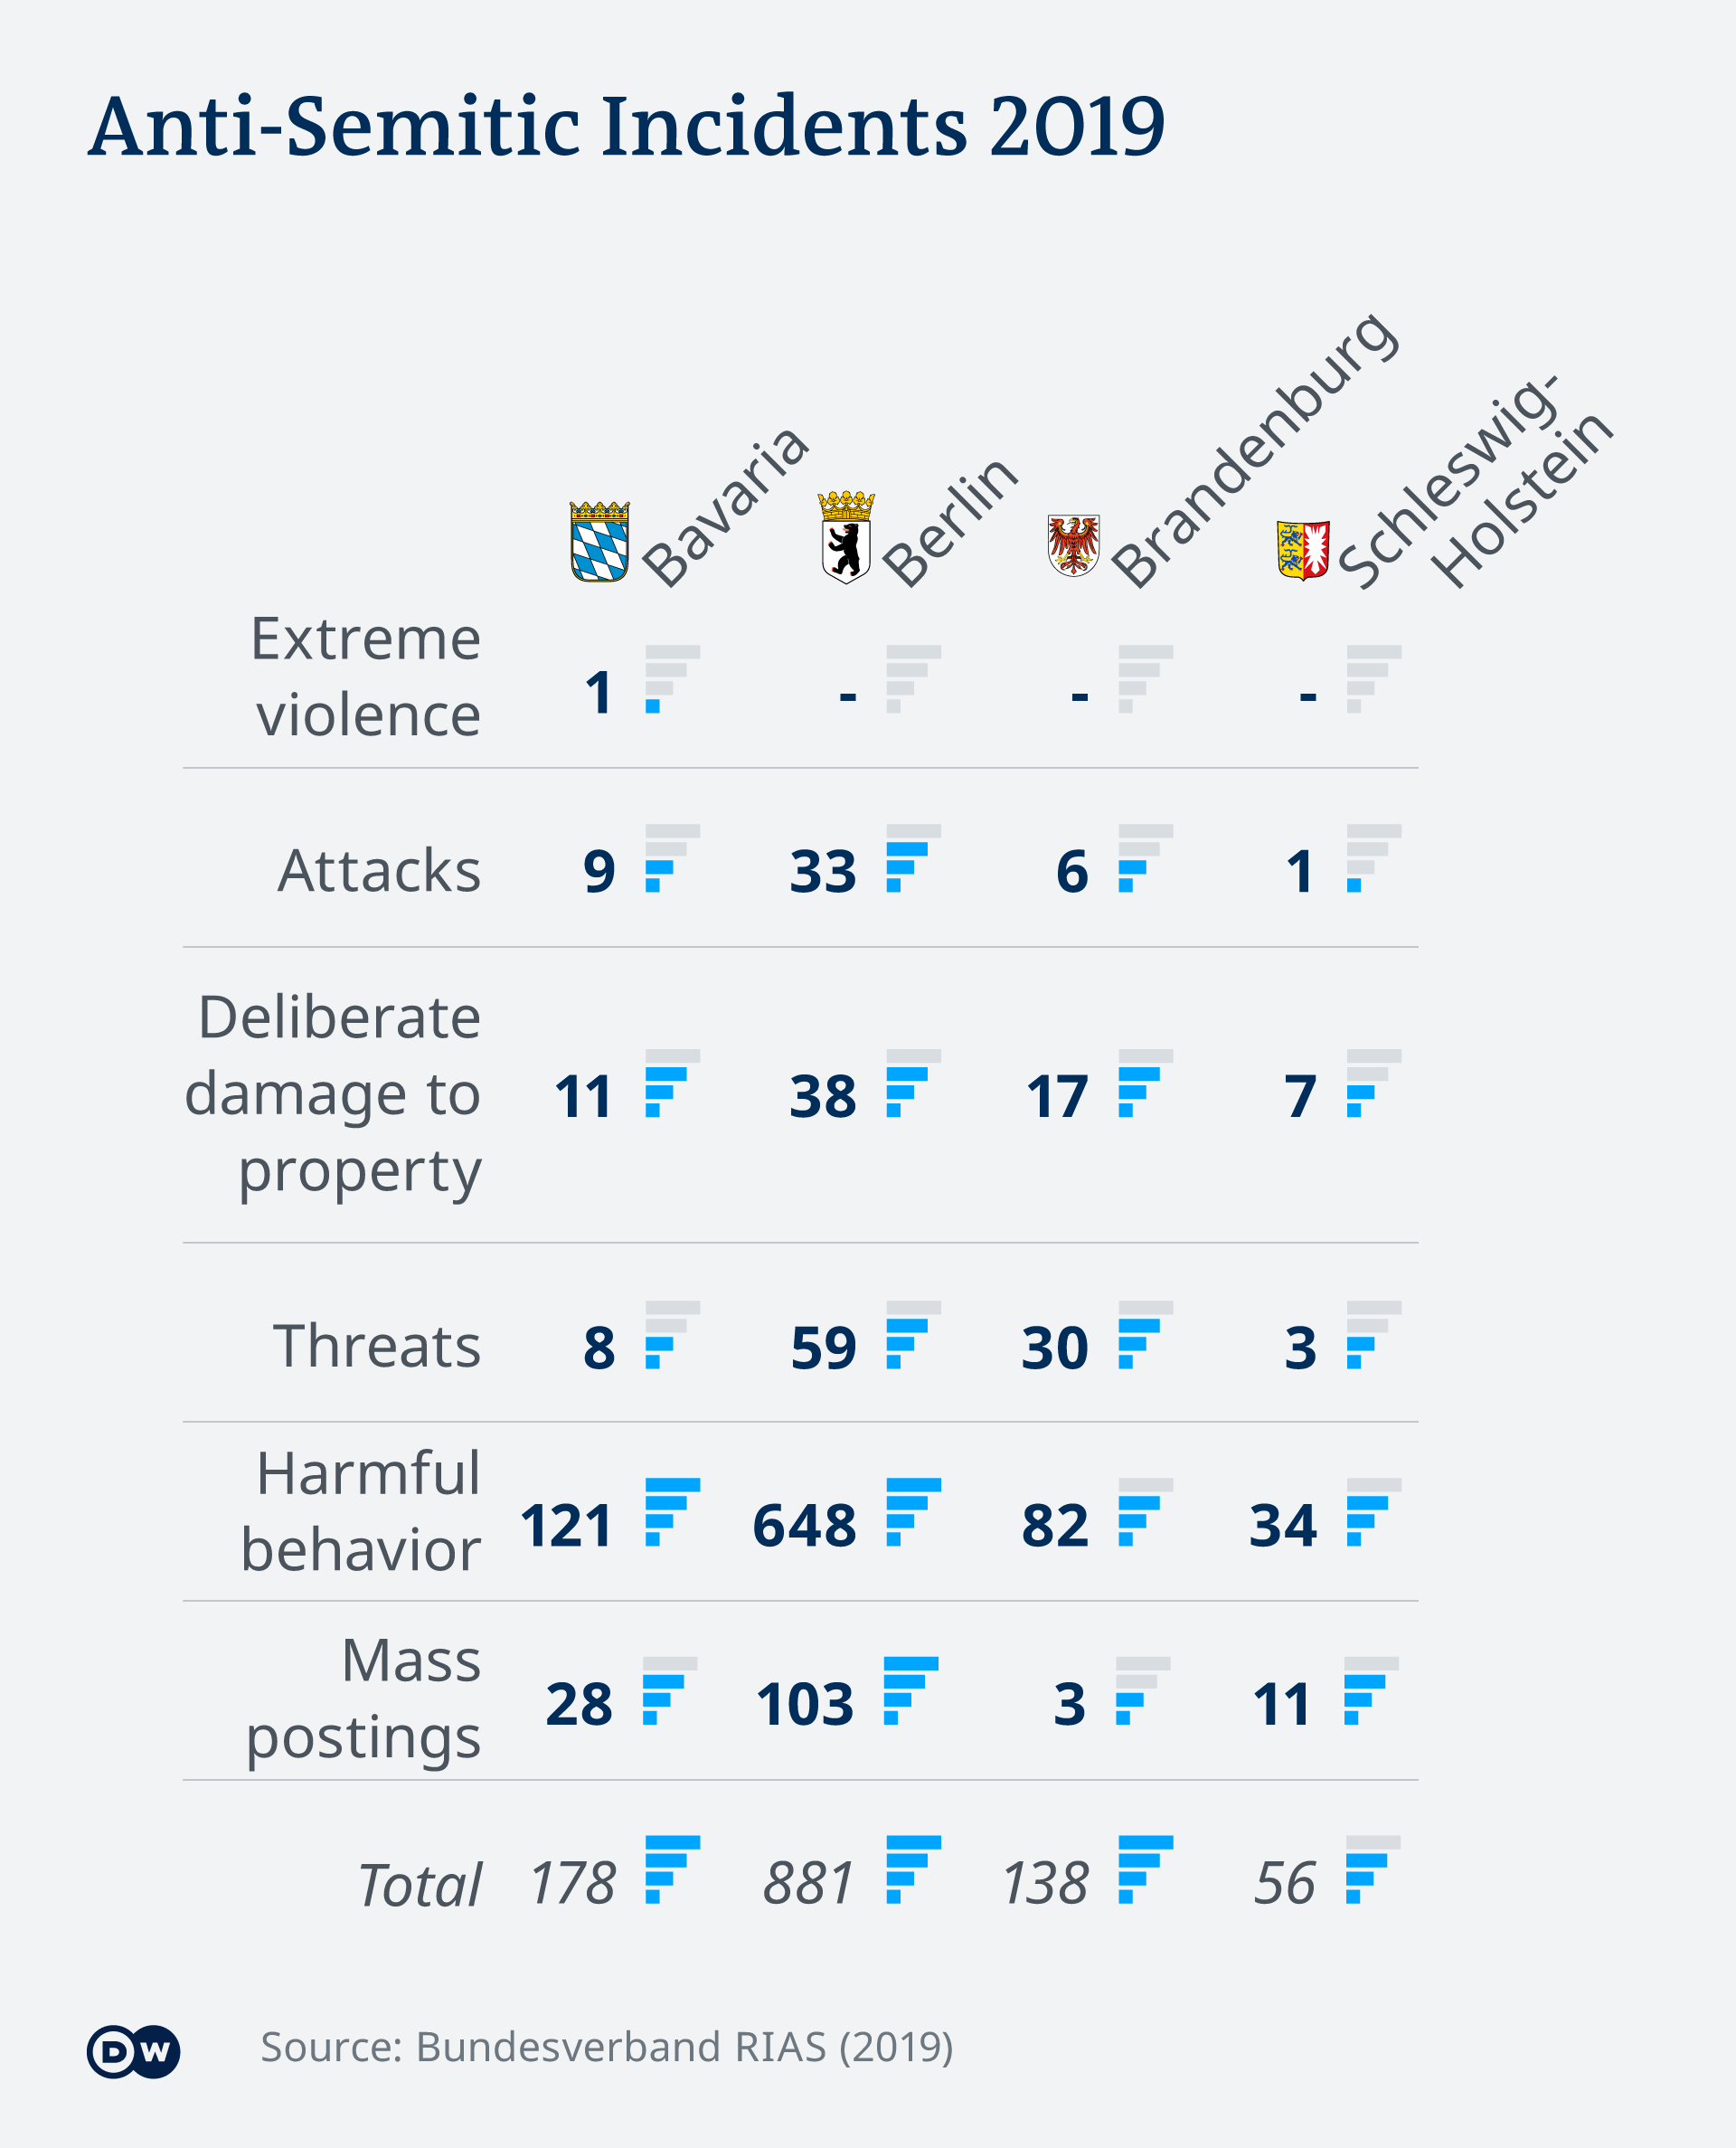 Infographic showing anti-Semitic incidents in 2019